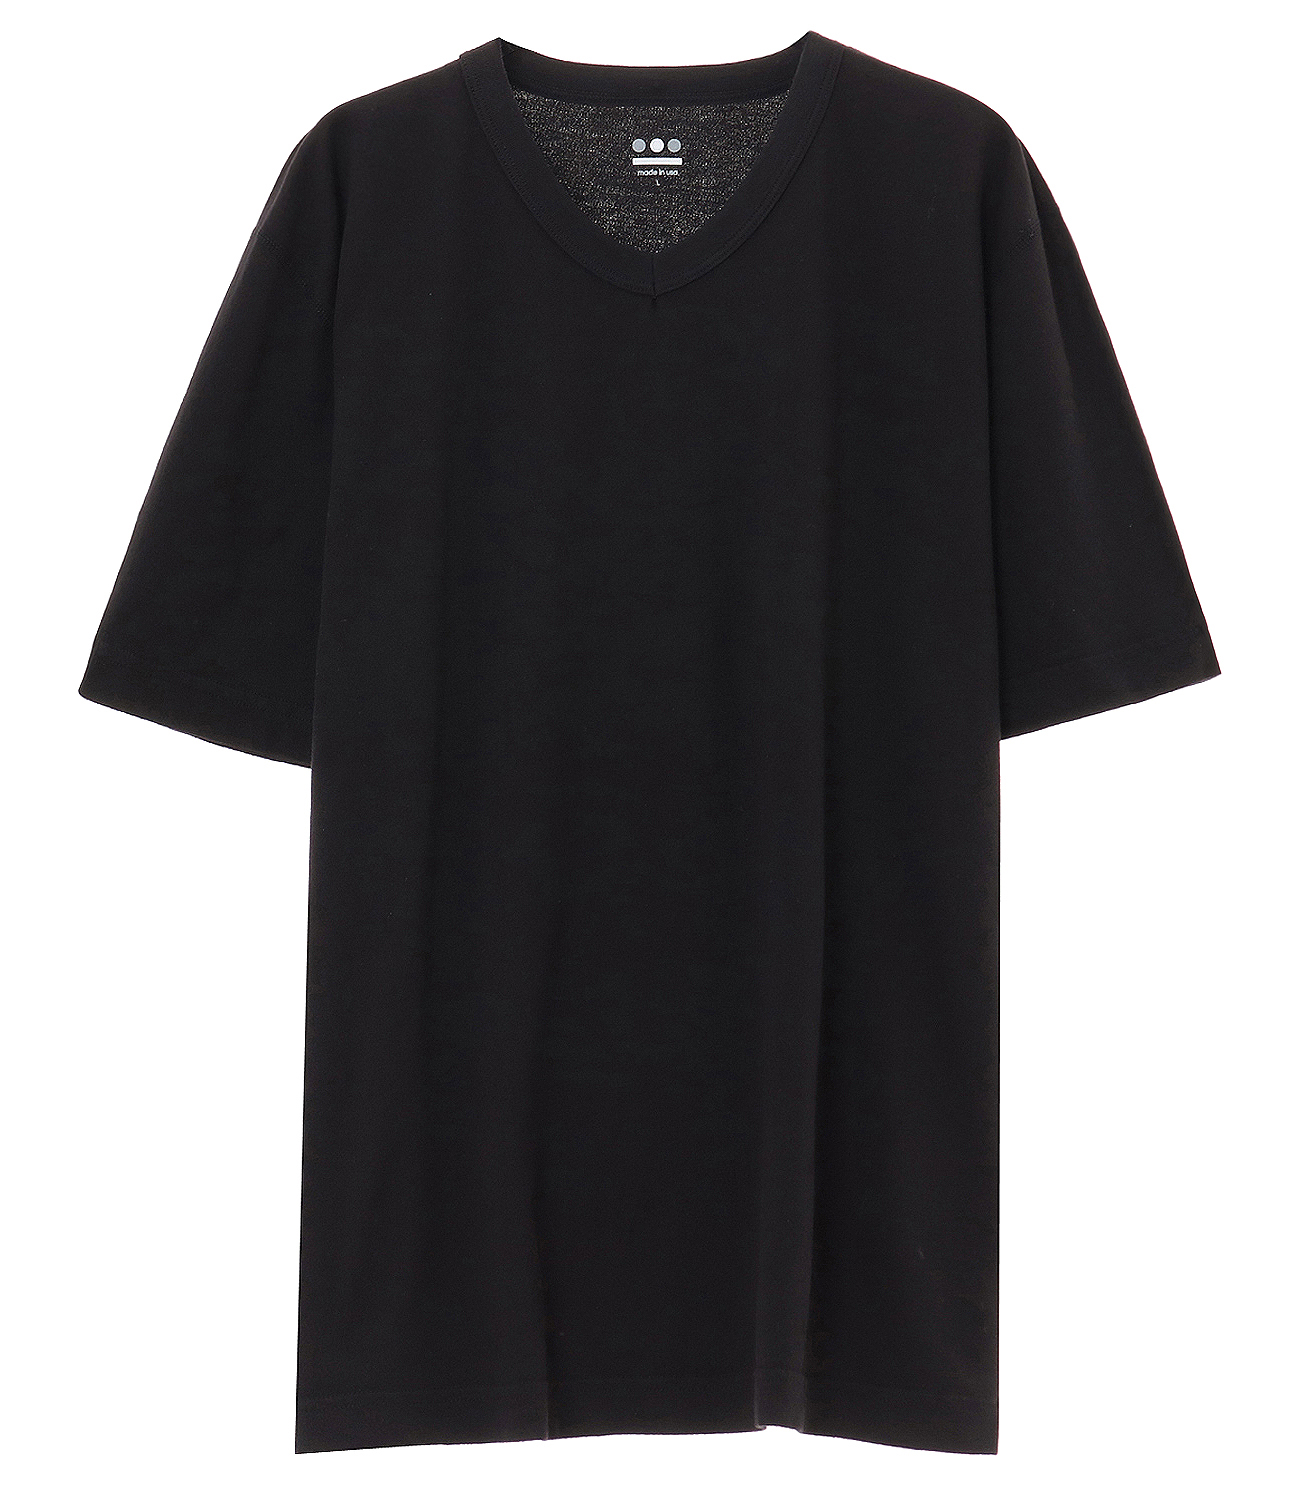 short slv v-neck 詳細画像 black 1